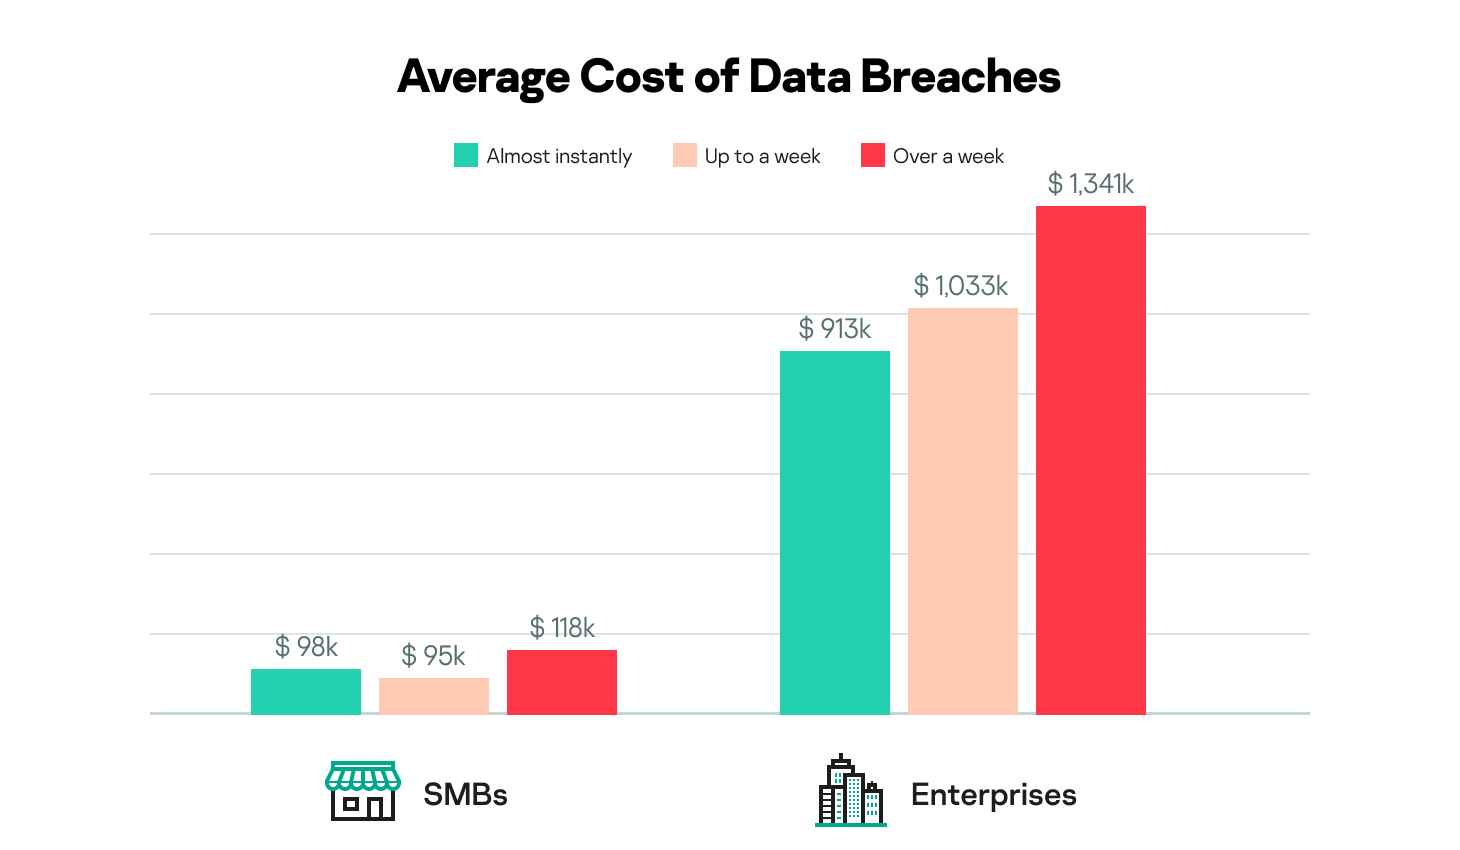 When data breaches were discovered and how much they cost amongst SMBs and enterprises